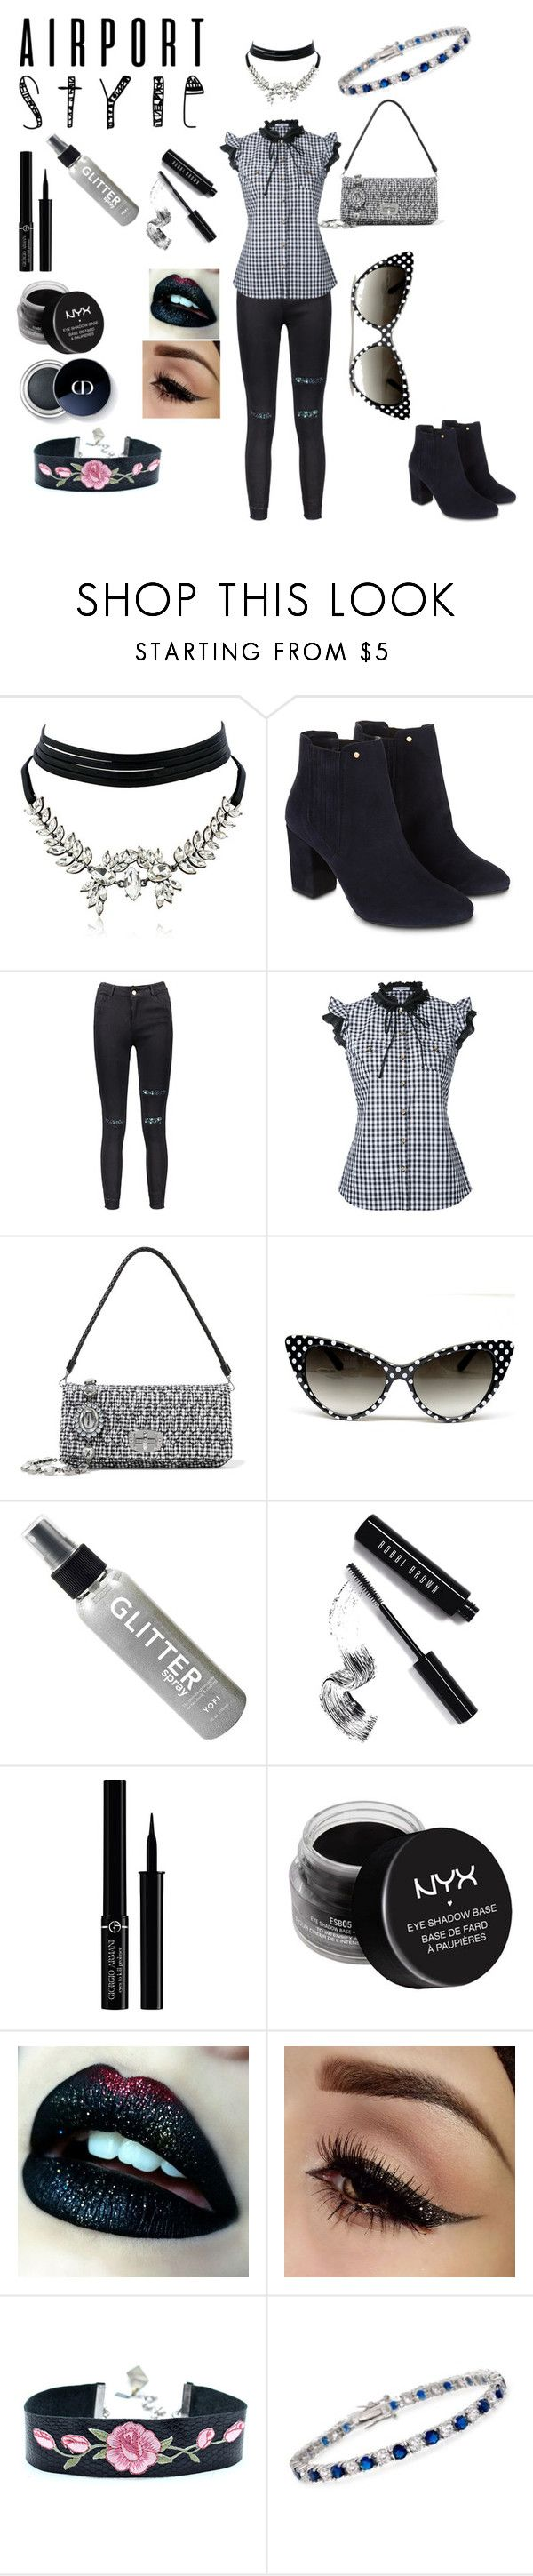 """""""Goth Airport style"""" by angie-g-snowfire ❤ liked on Polyvore featuring WithChic, Monsoon, Guild Prime, Miu Miu, Bobbi Brown Cosmetics, Giorgio Armani, NYX and Ross-Simons"""